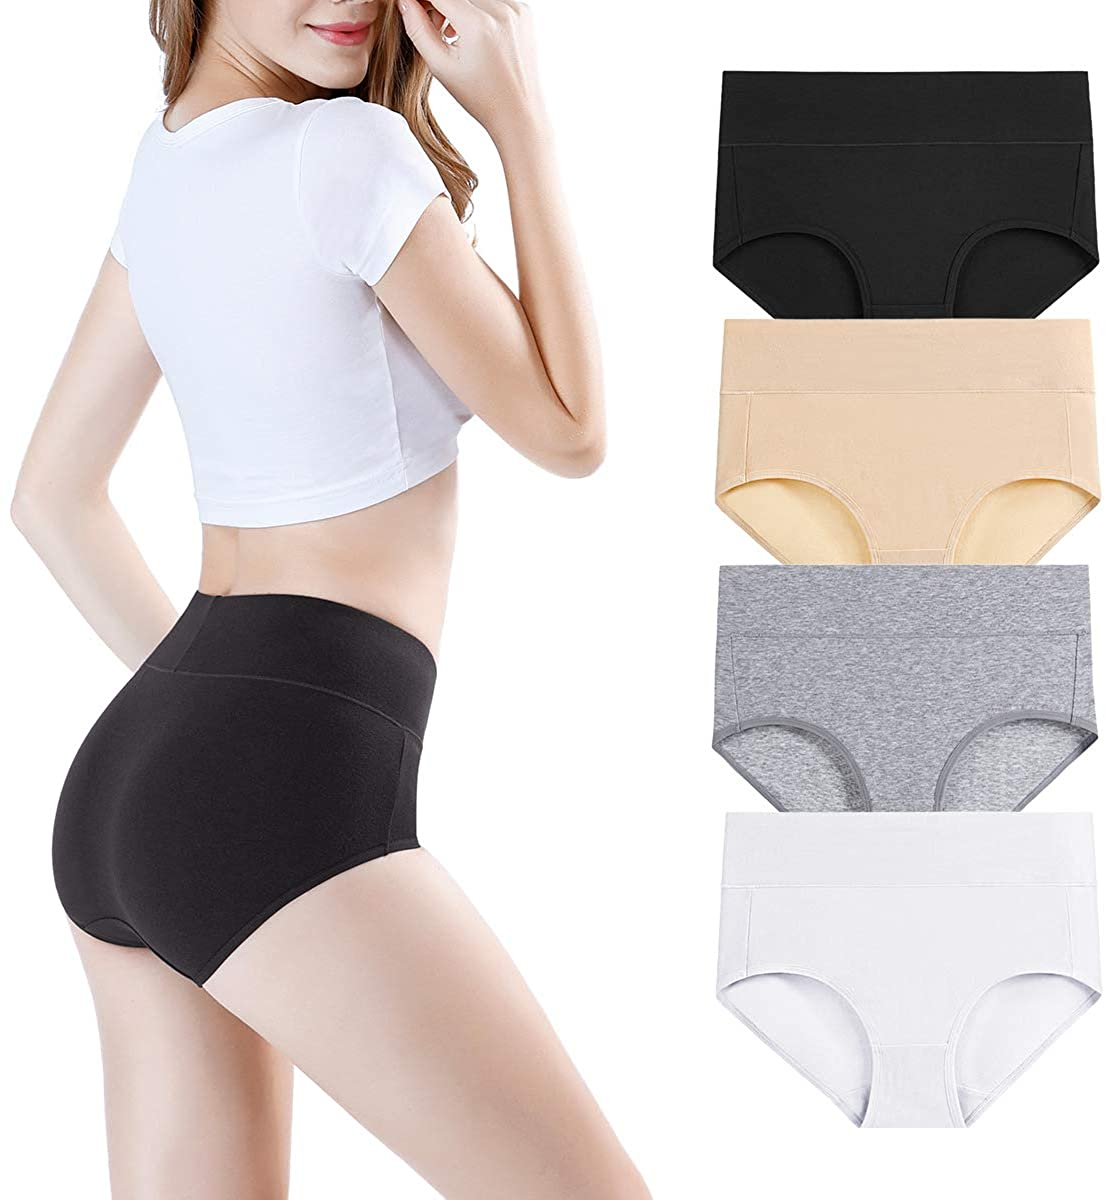 wirarpa Ladies Knickers High Rise Soft Bamboo Modal Pants Underwear for Women Full Stretchy Briefs Multipack